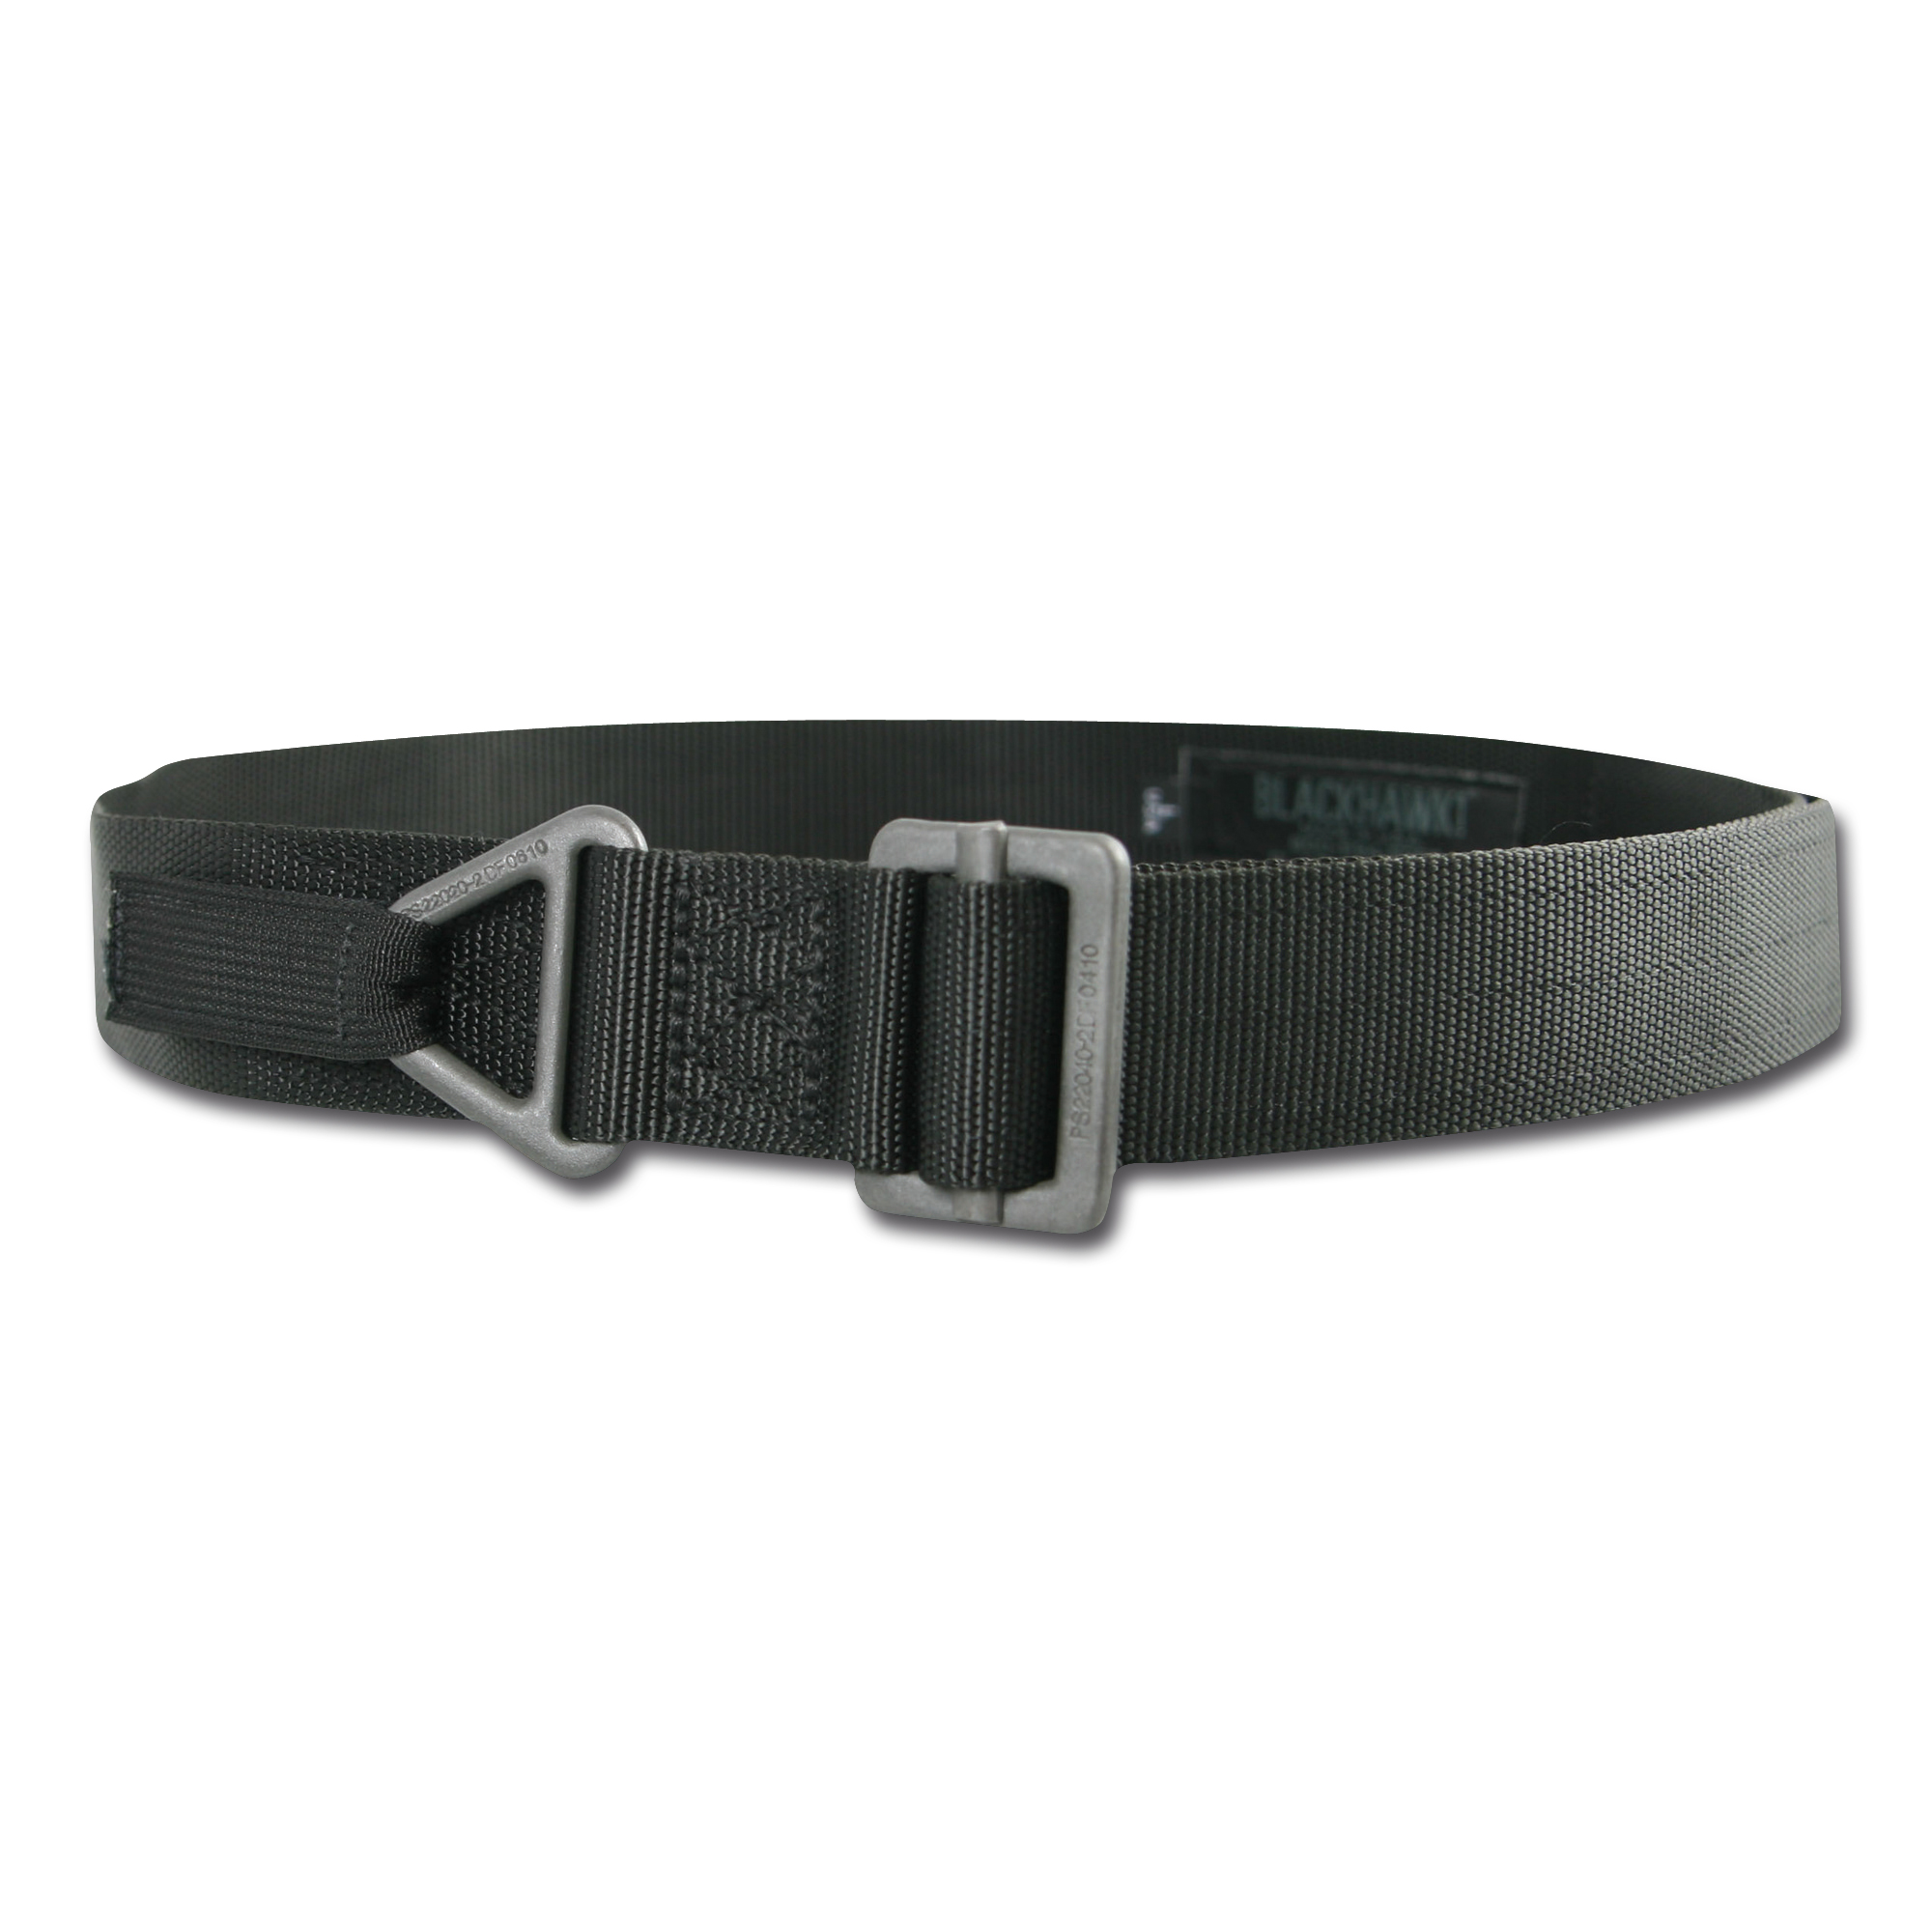 Blackhawk Rescue-Belt black